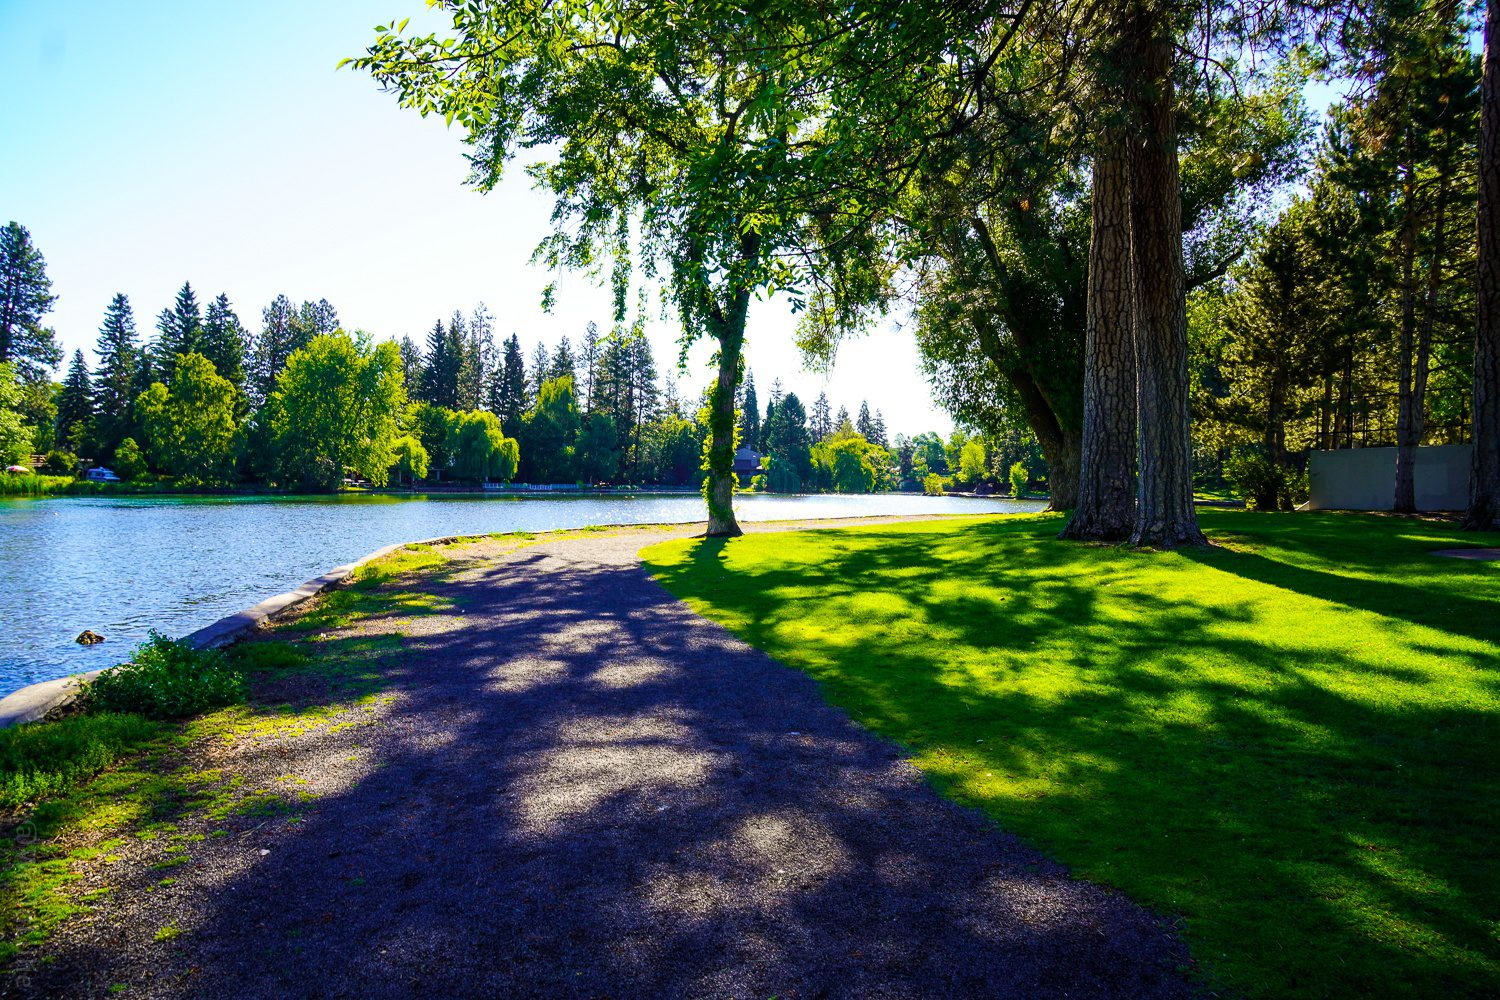 There's a gravel path by the Deschutes River.